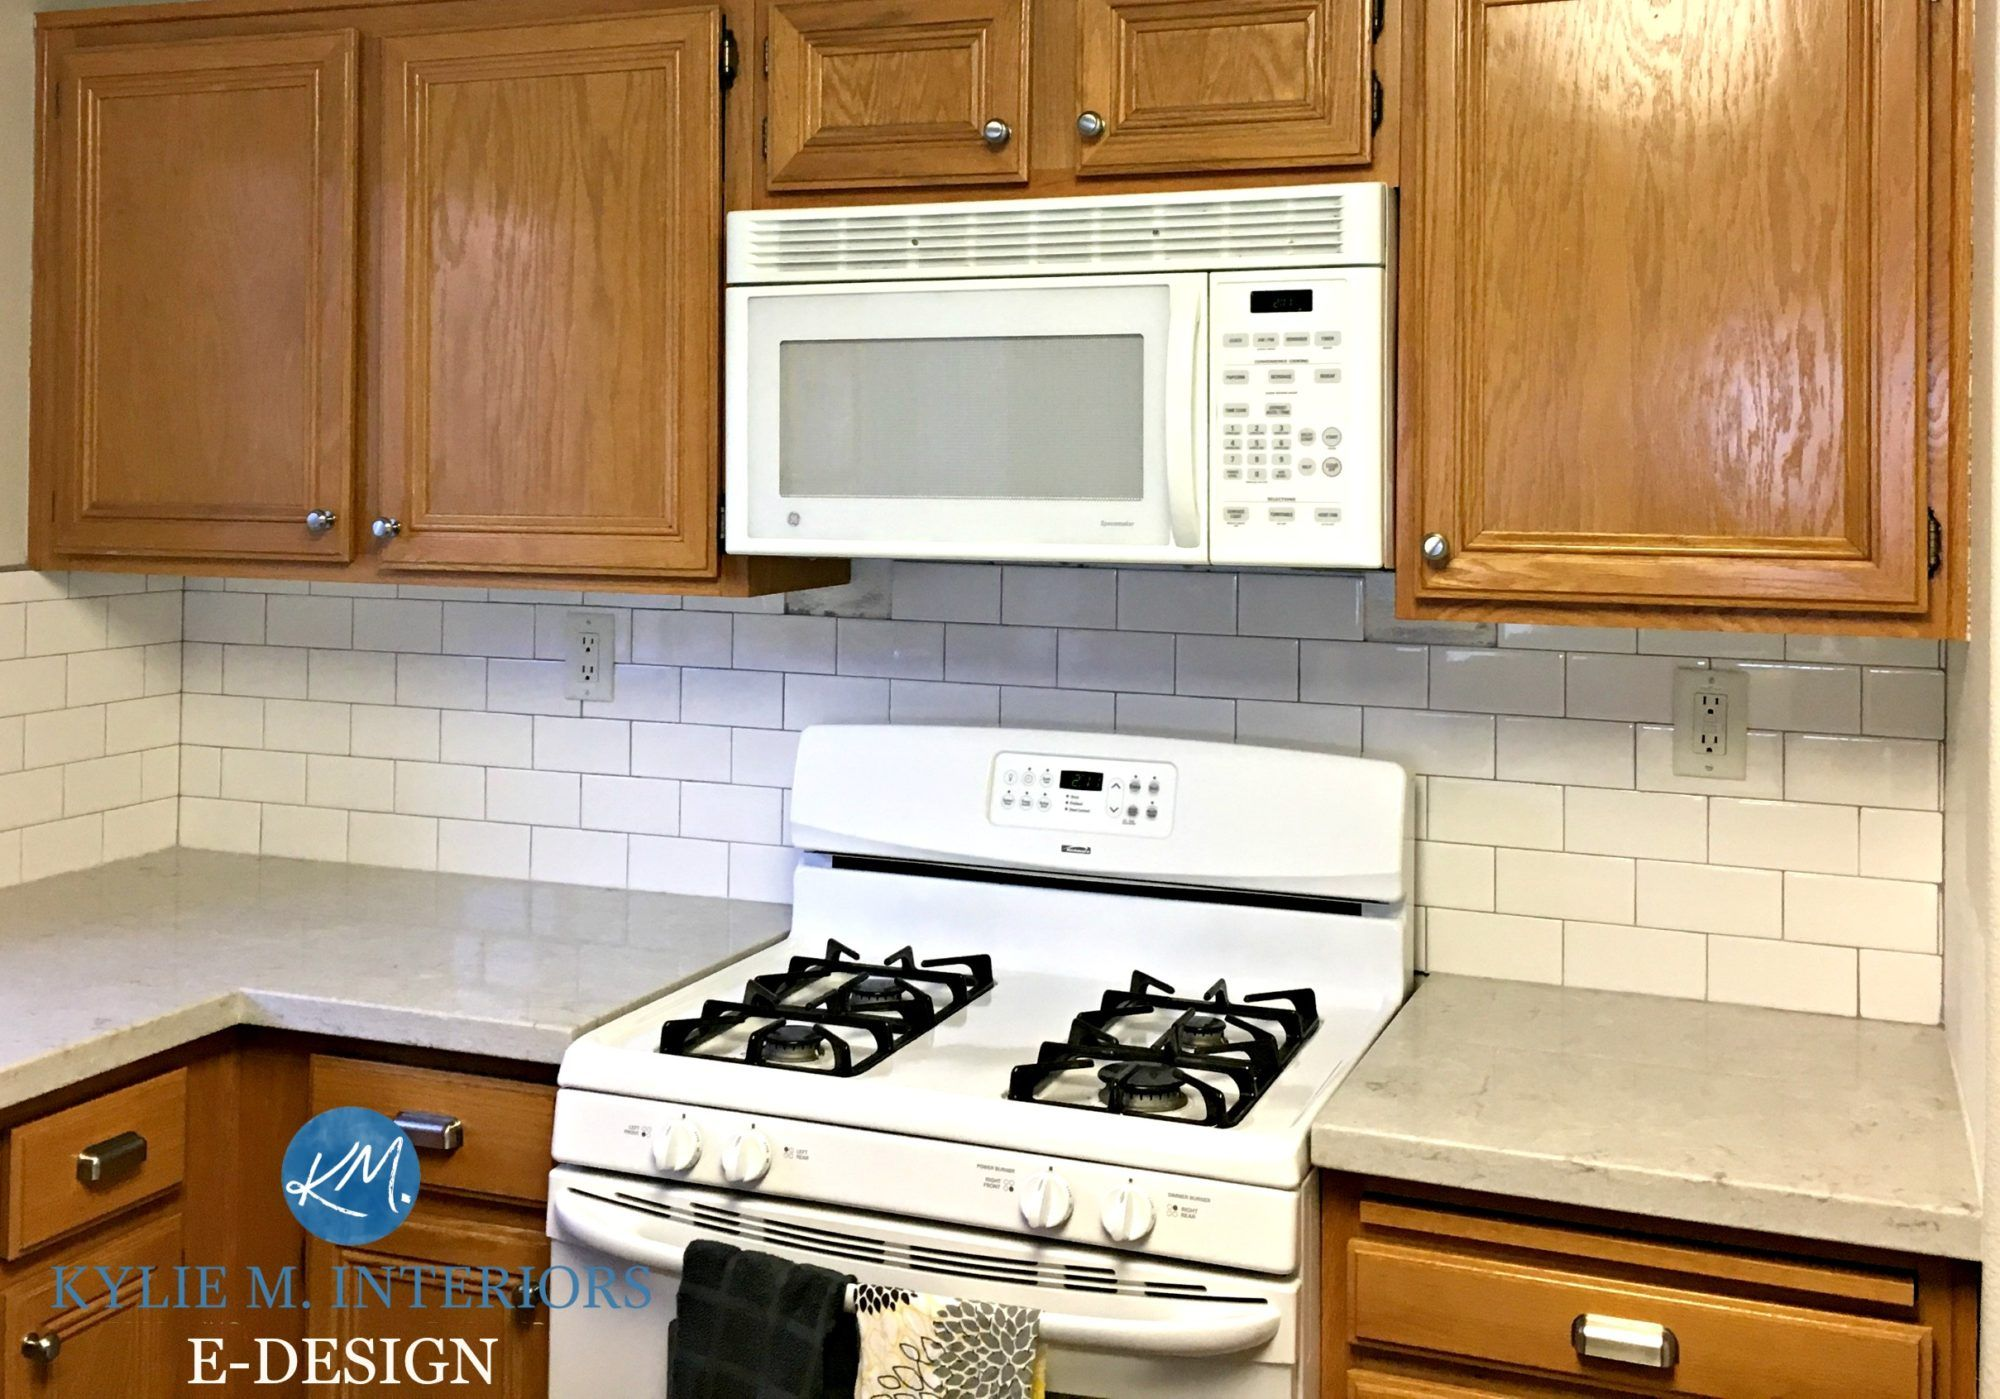 5 More Ideas Update Oak Or Wood Cabinets Without A Drop Of Paint White Kitchen Appliances Oak Kitchen Cabinets Trendy Kitchen Backsplash